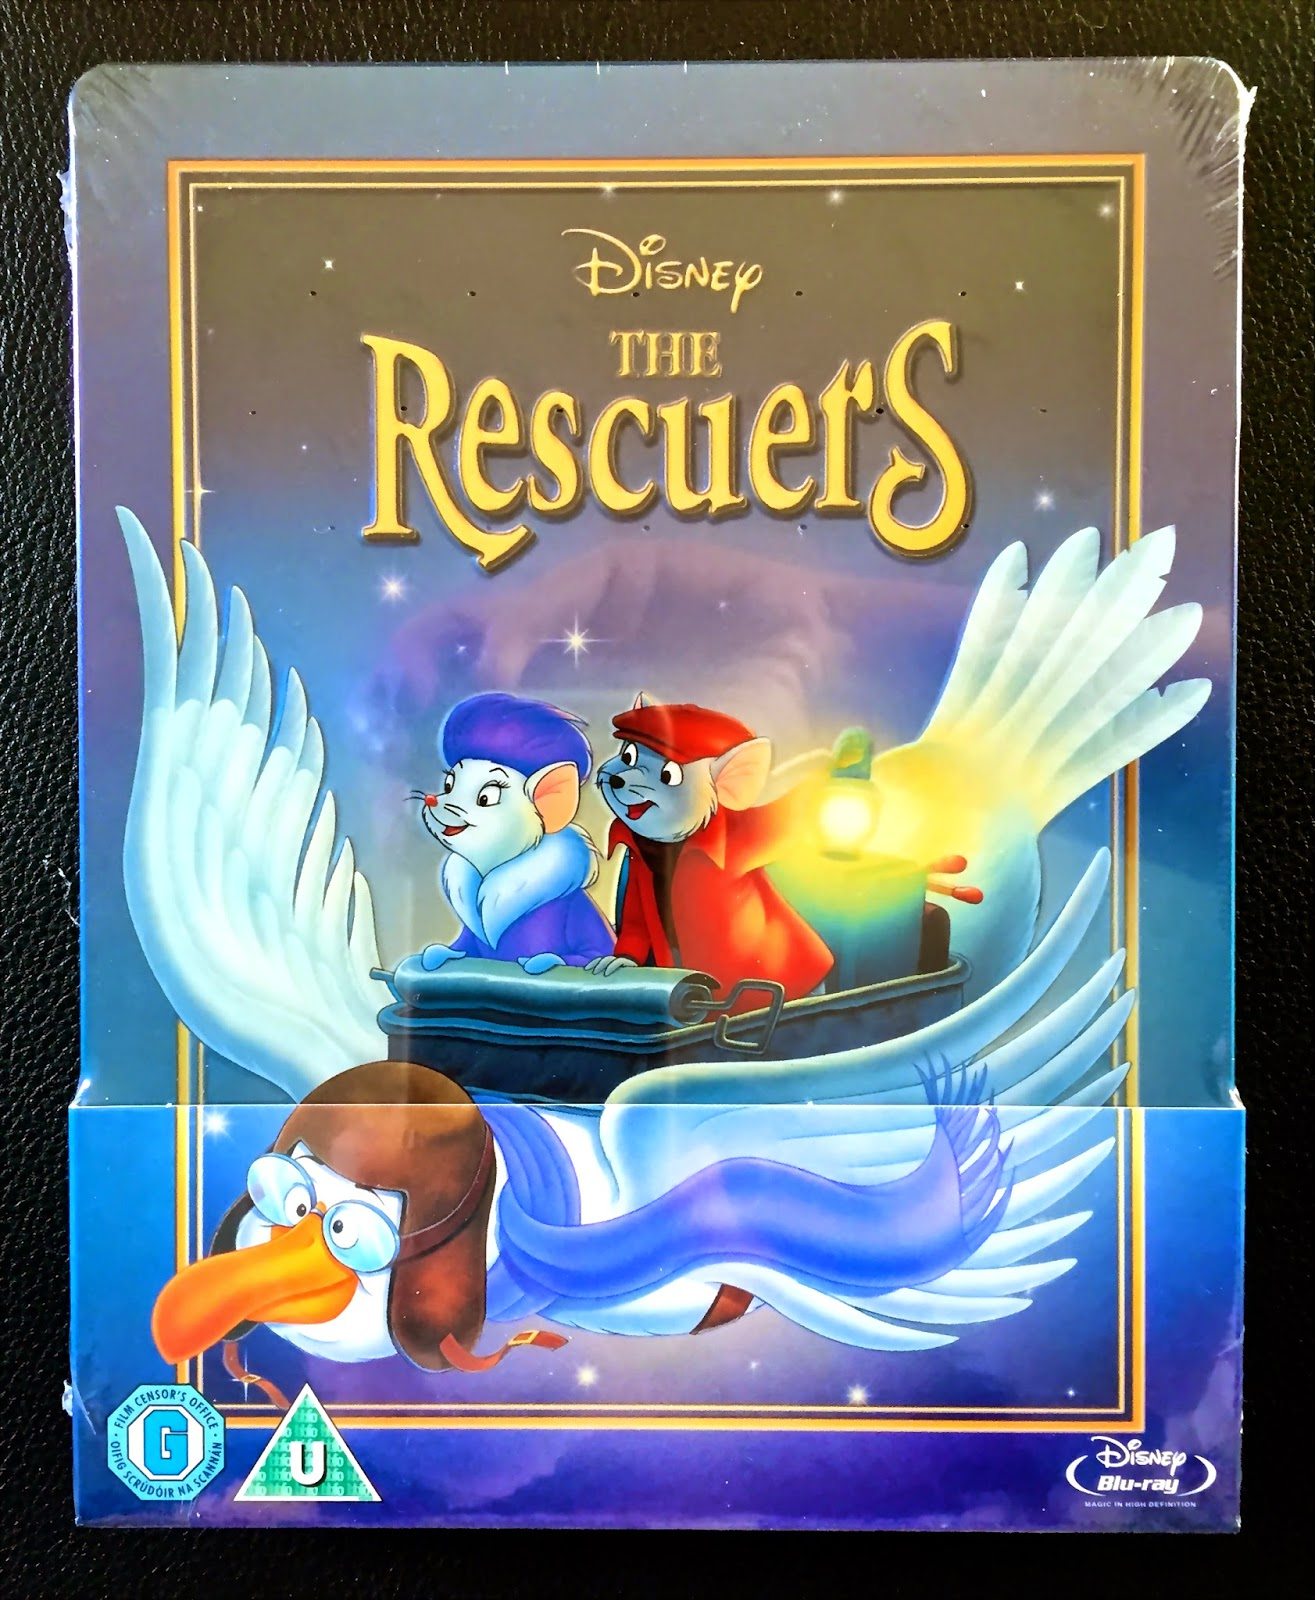 Limited Edition Disney Steelbook Blu-ray, The Rescuers